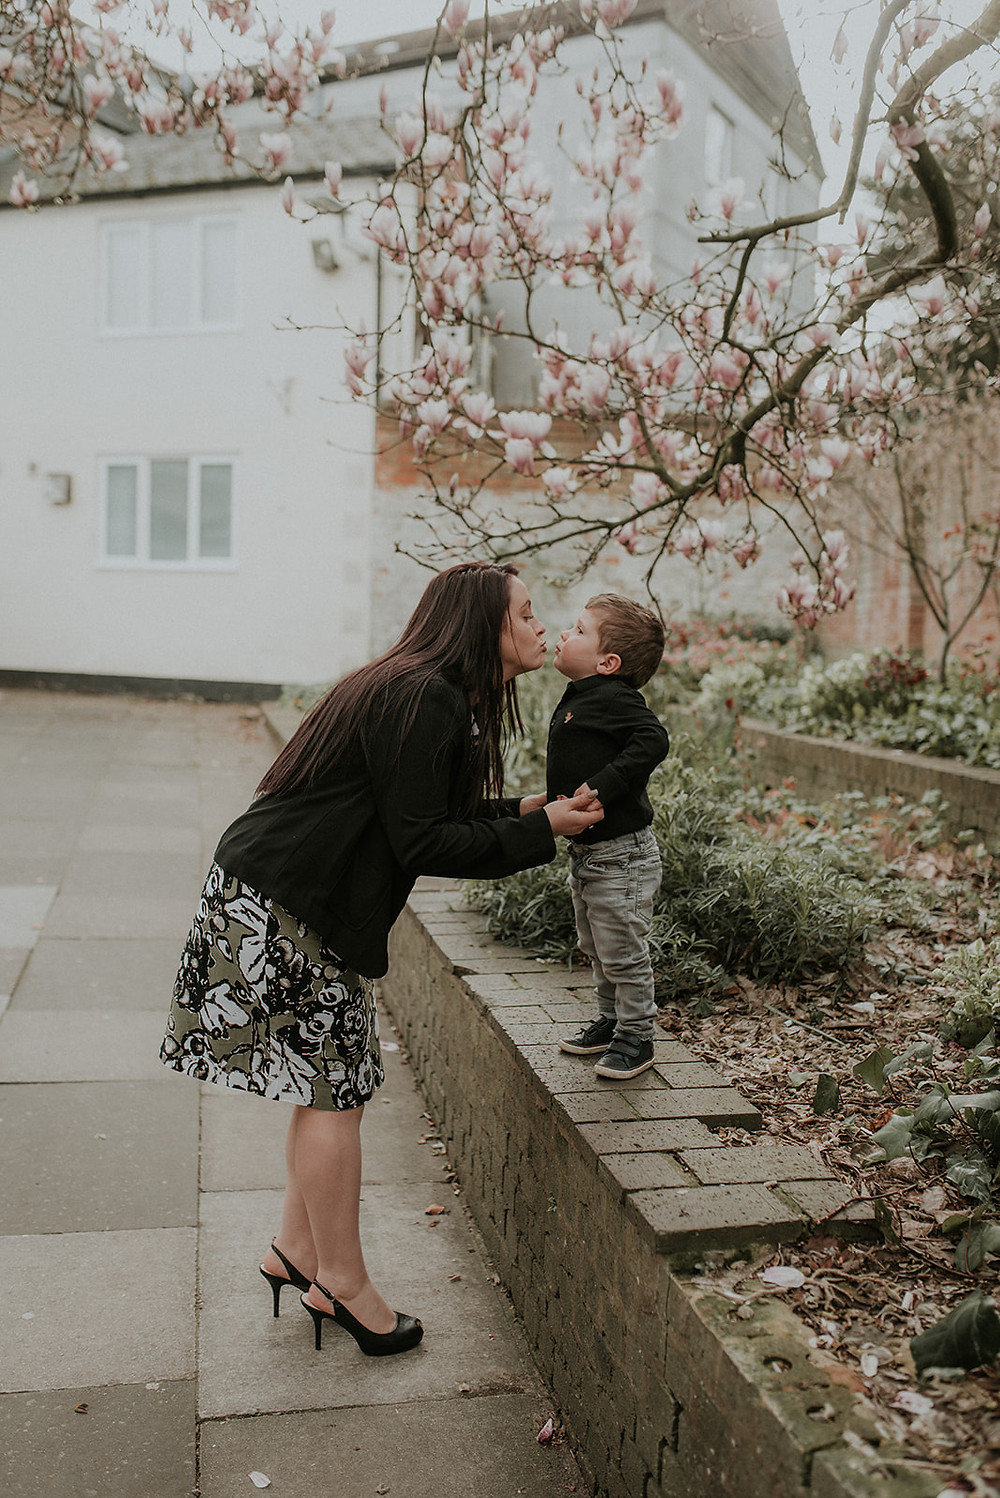 Mum and son kissing